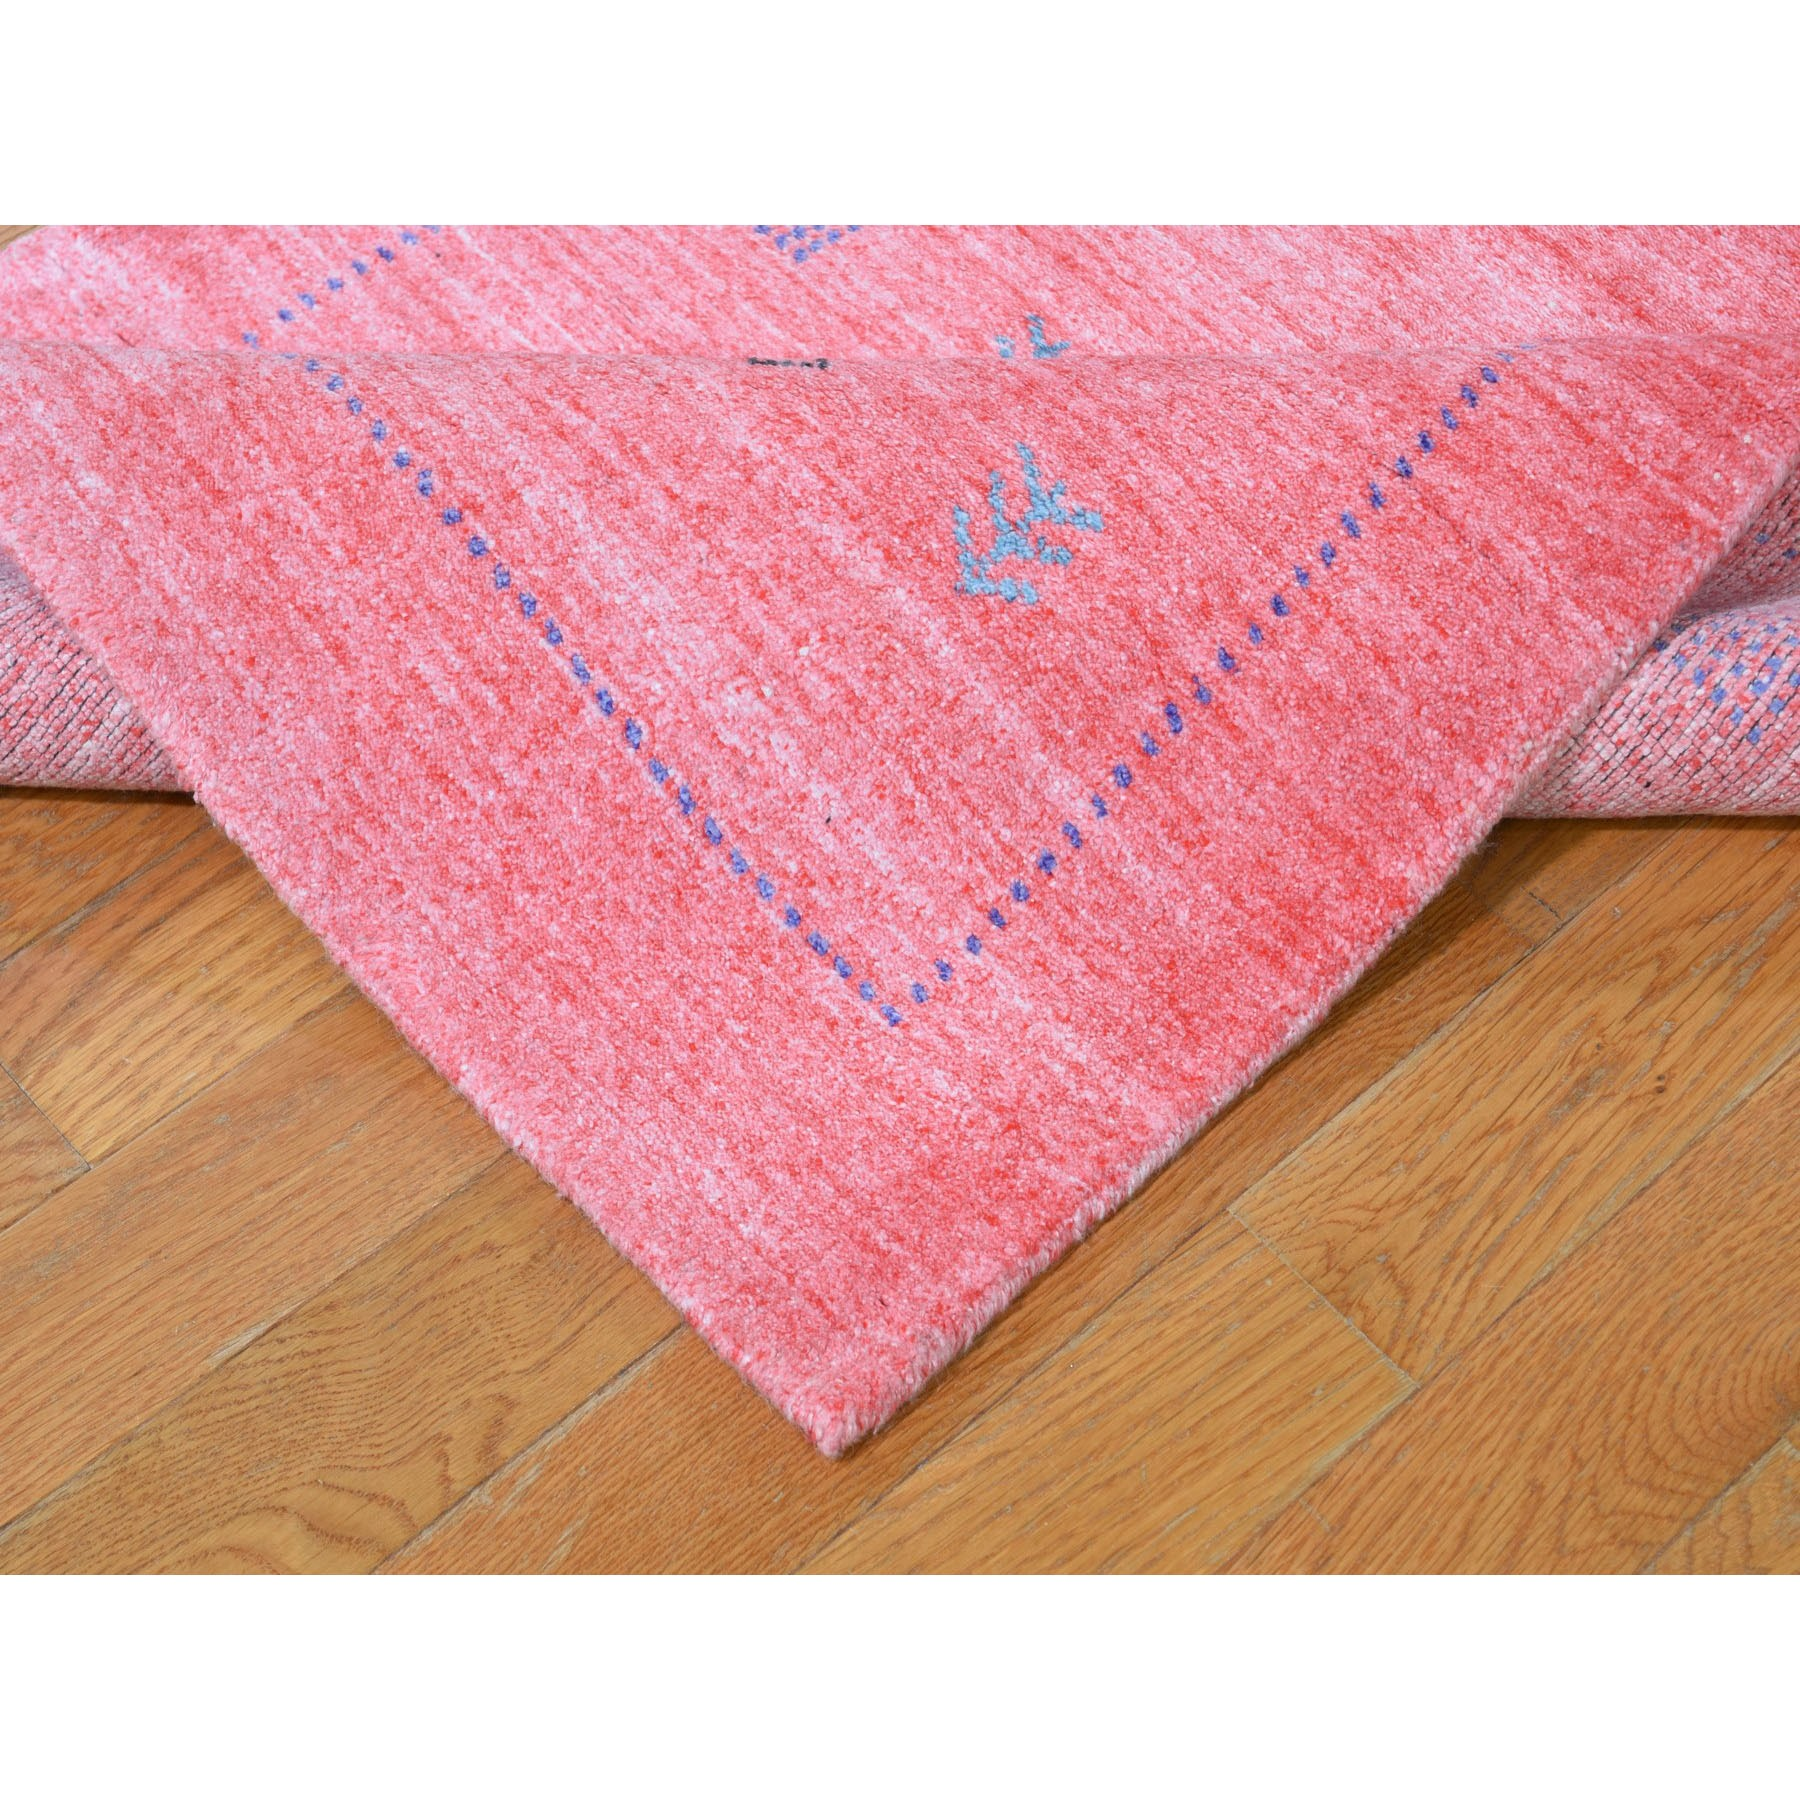 "2'8""x13'6"" Pink Wool and Silk Hand Loomed Gabbeh Runner Oriental Rug"